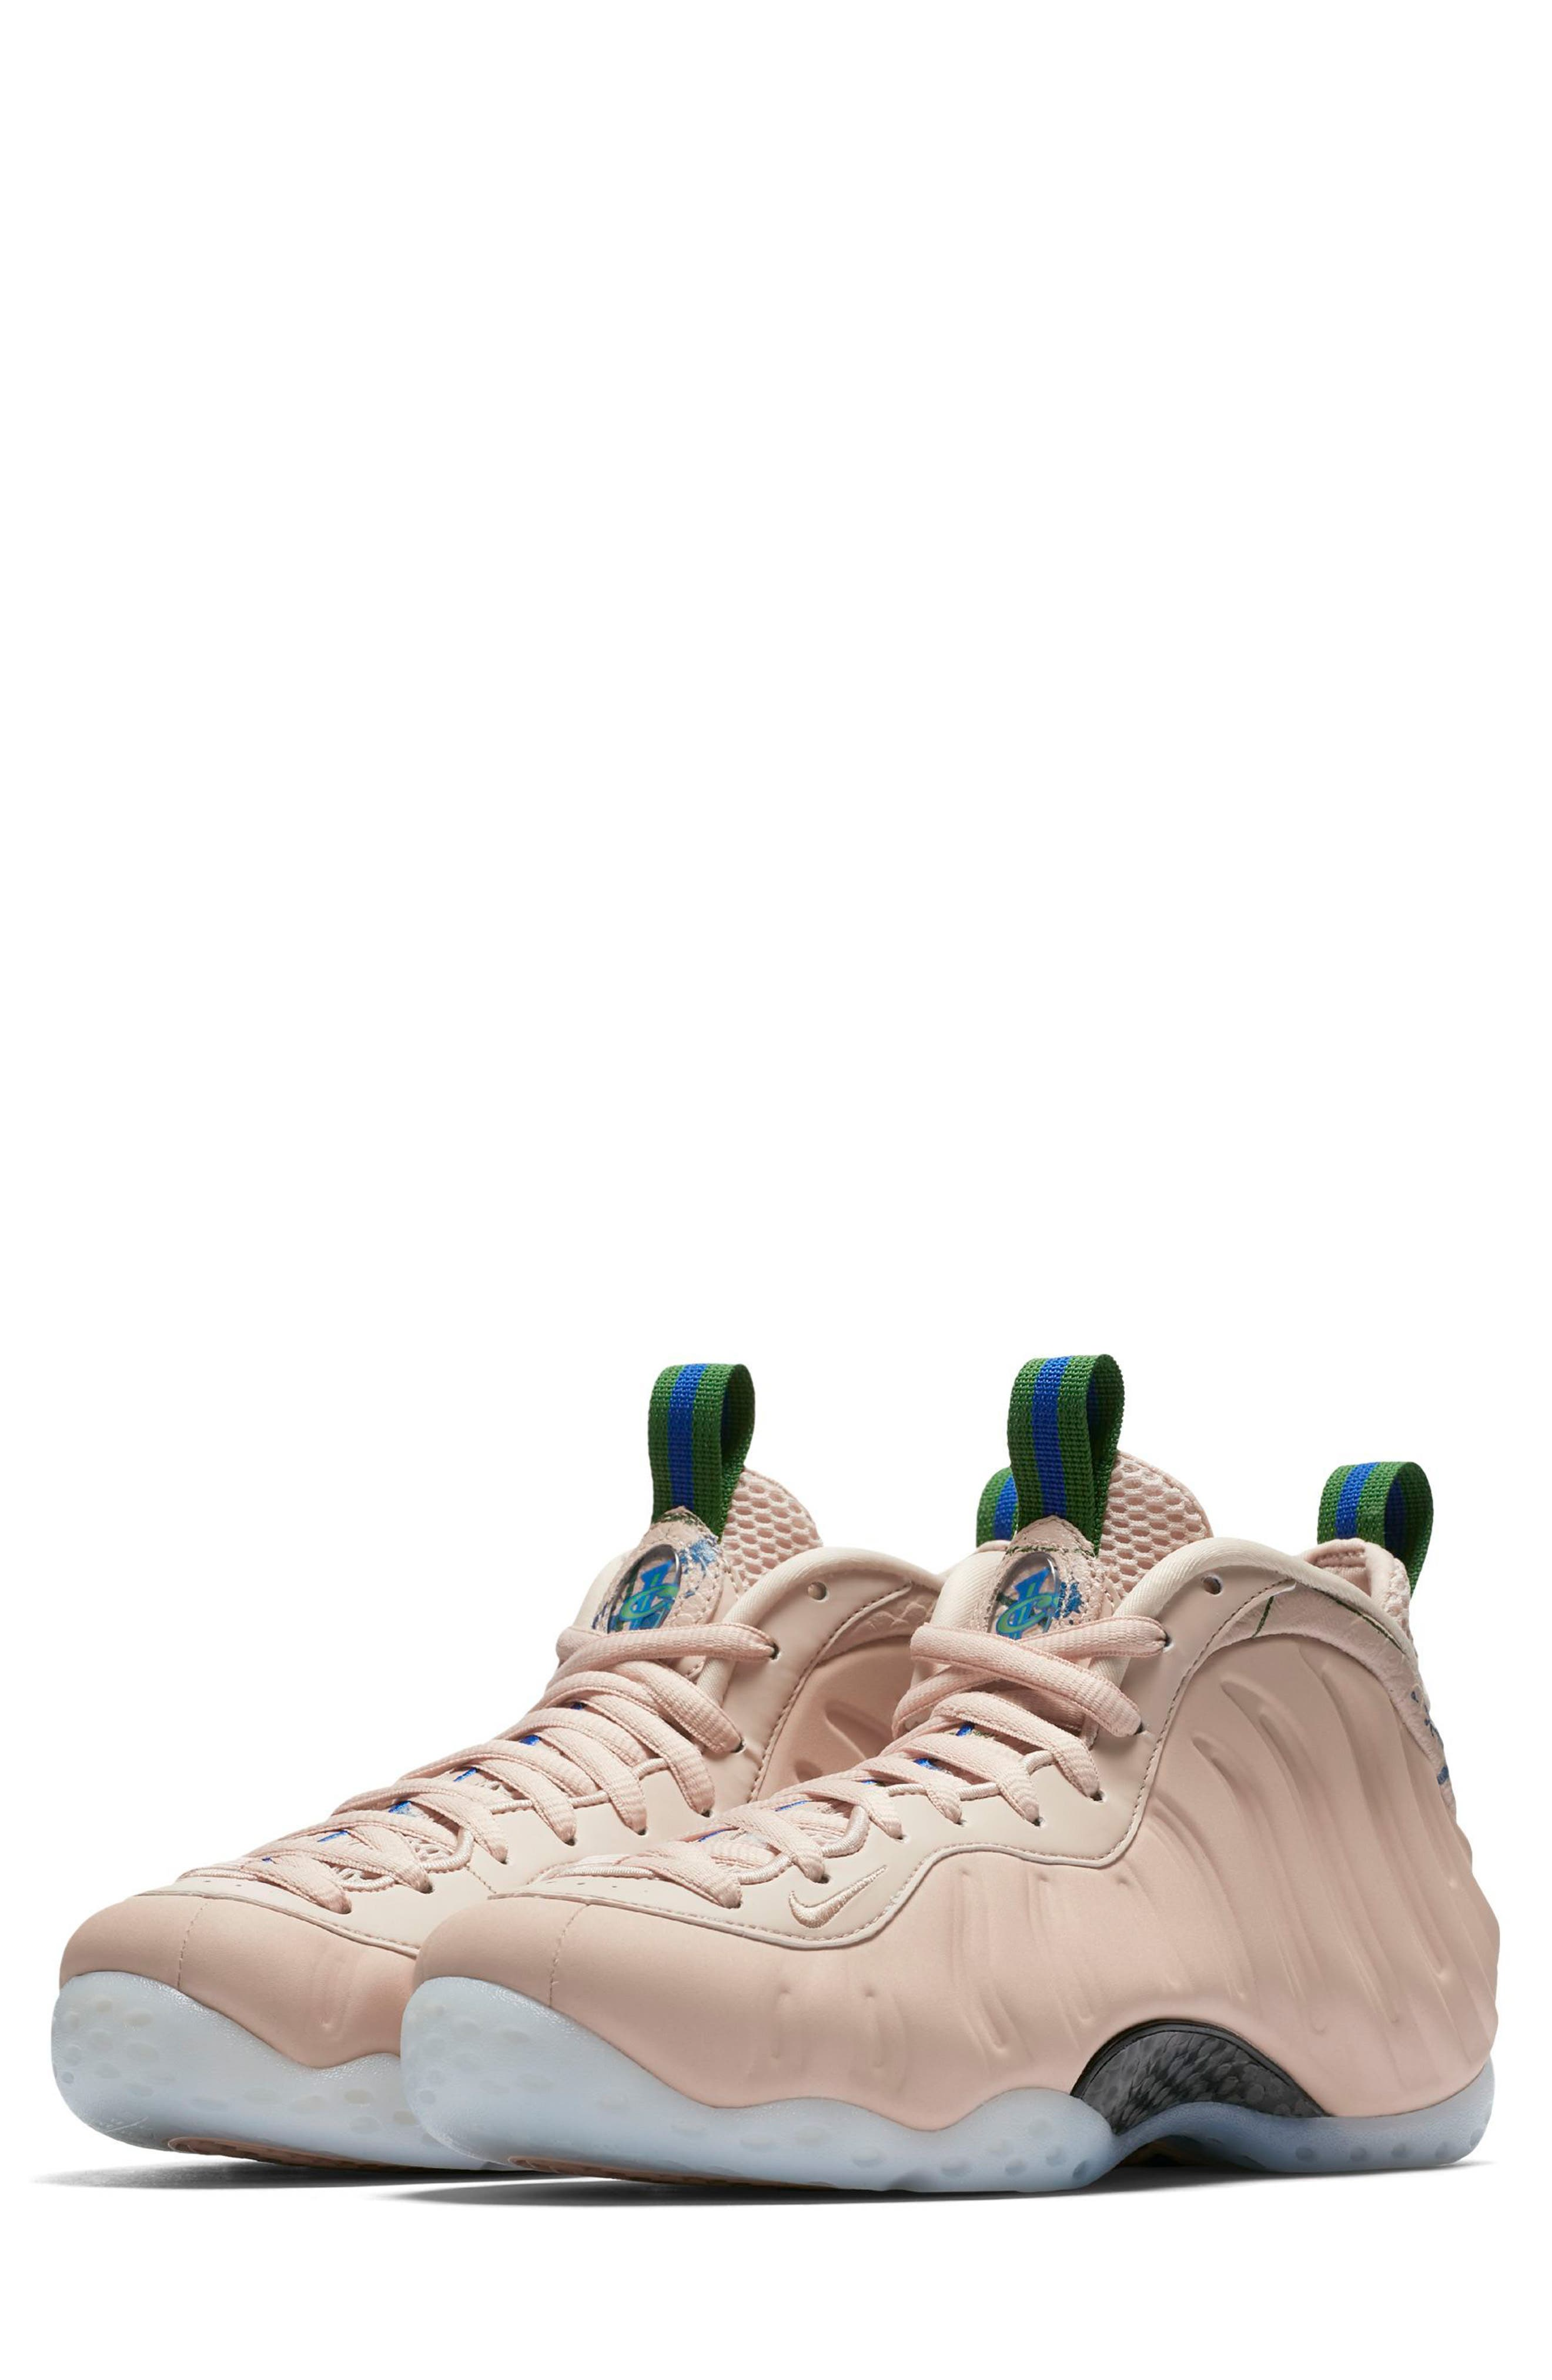 Air Foamposite One Sneaker,                         Main,                         color, Particle Beige/ White